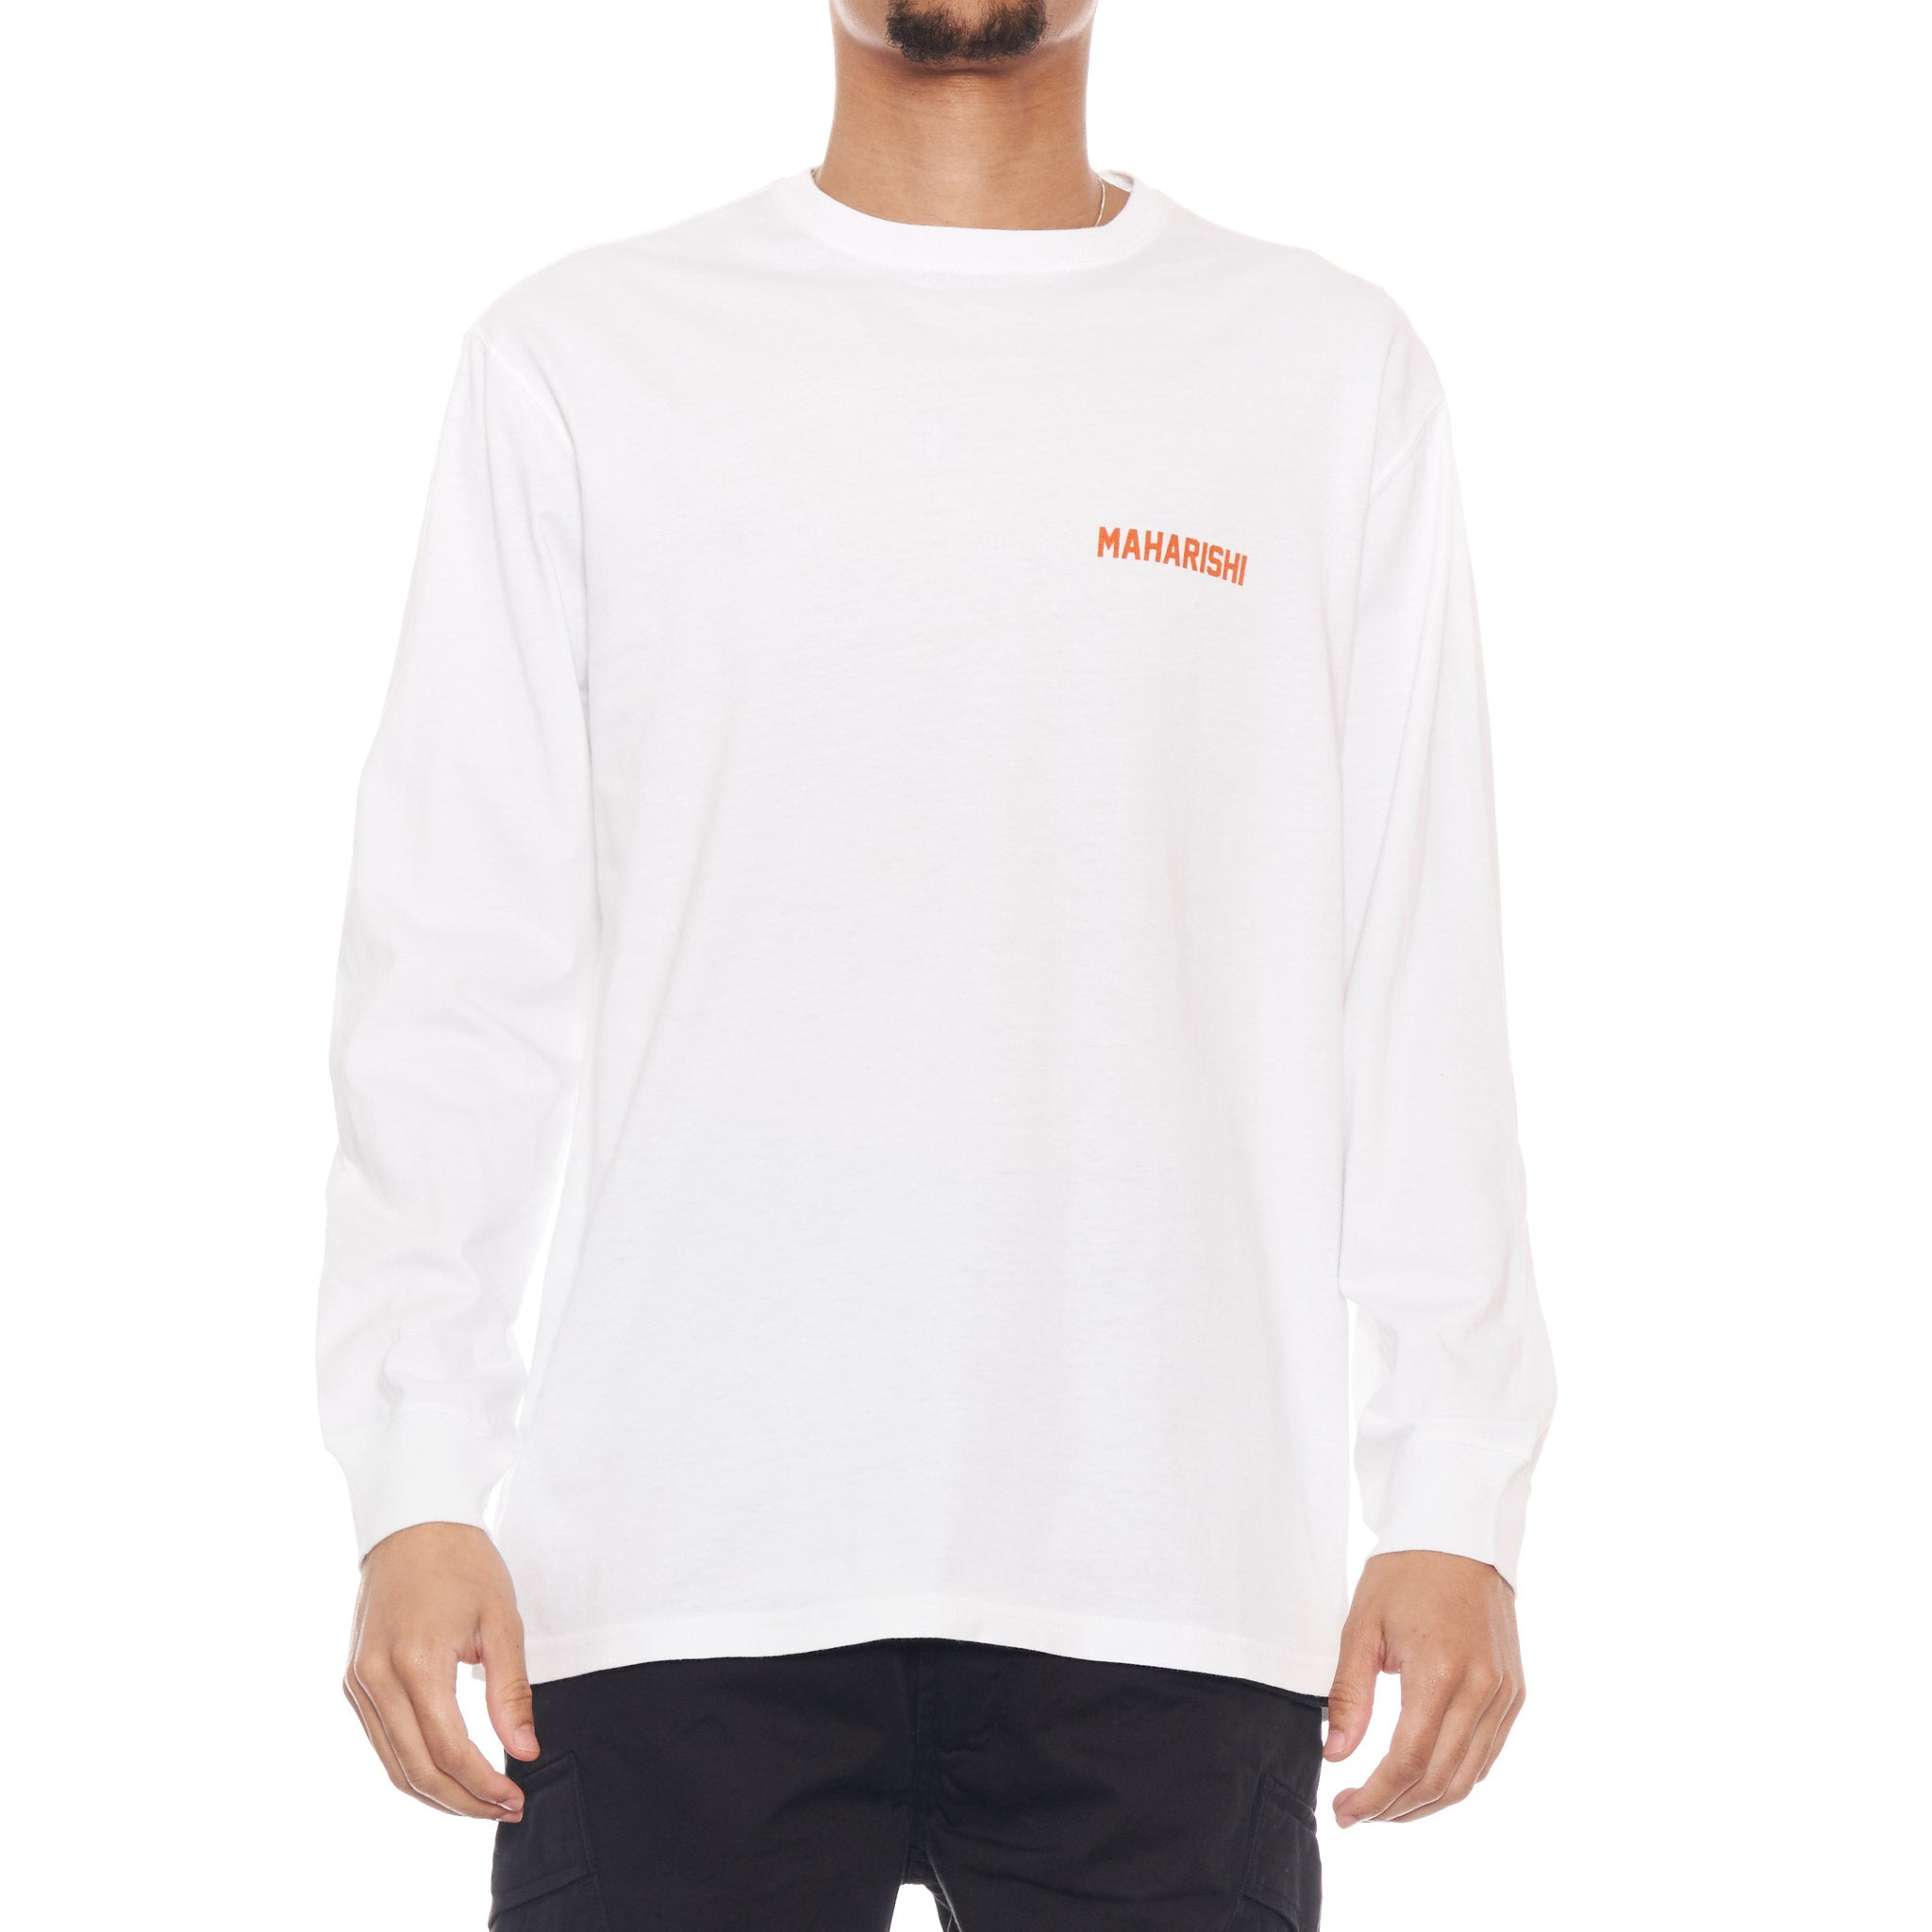 WISE TYGERS L/S TEE